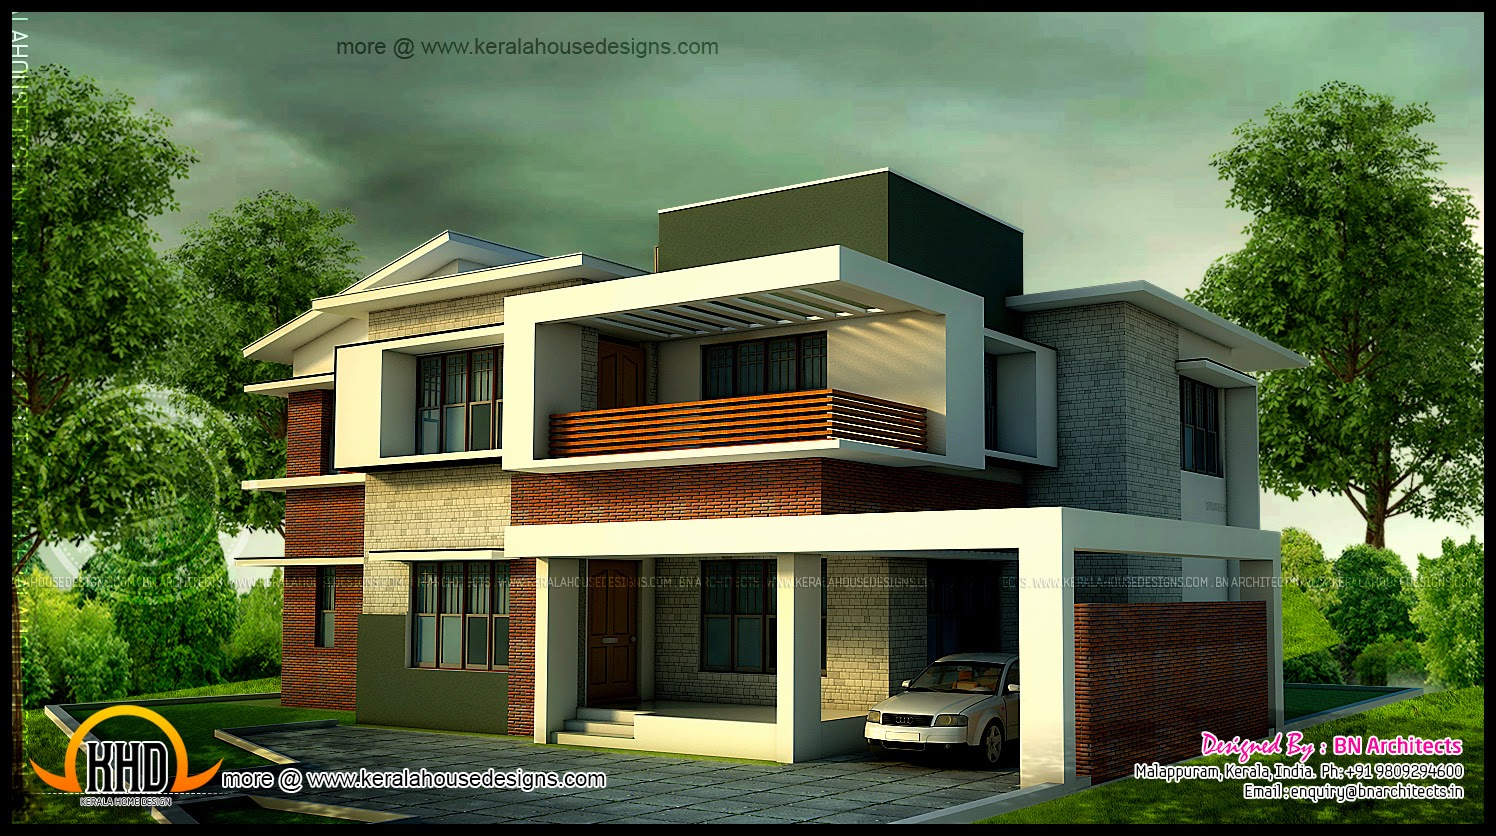 5 bedroom modern home in 3440 sq feet floor plan for In home designs